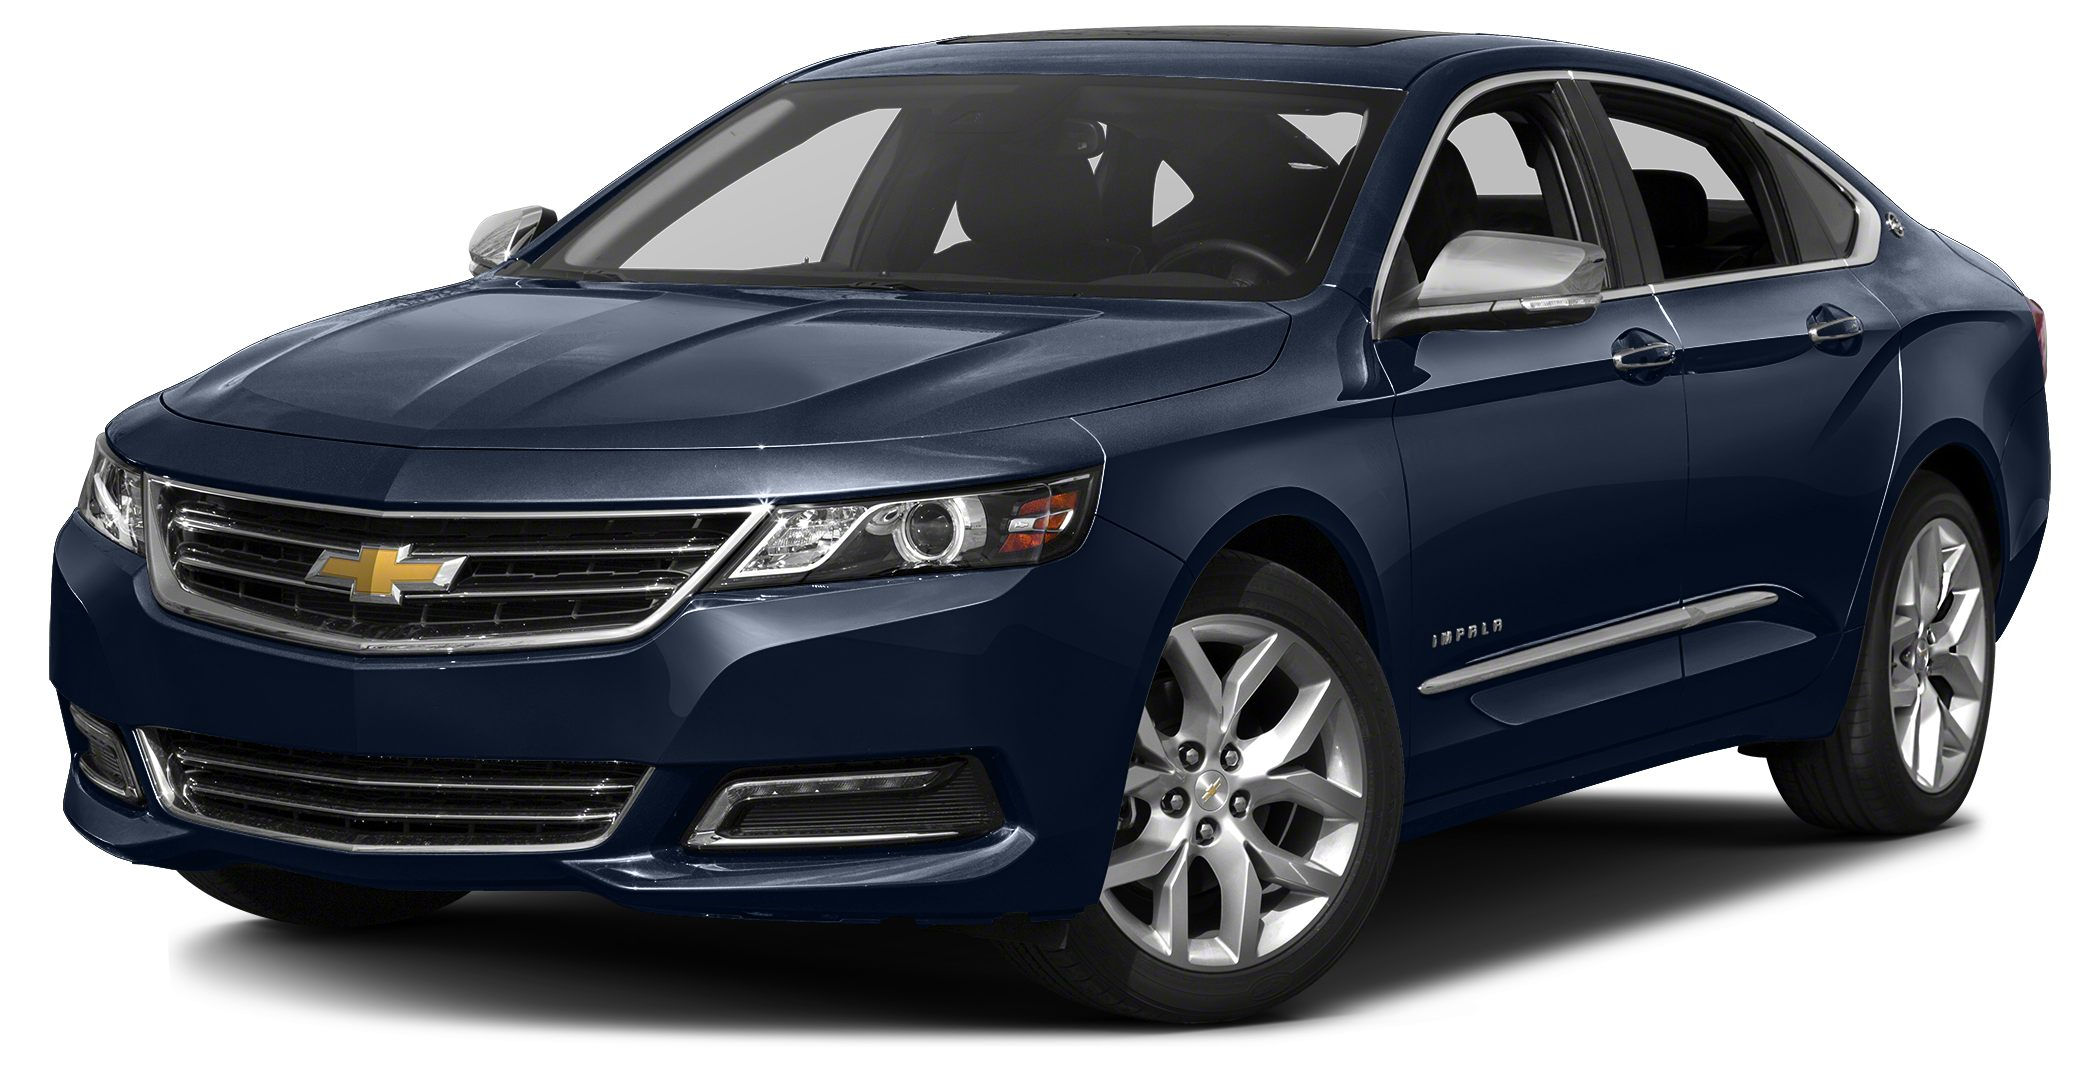 2016 Chevrolet Impala LTZ w2LZ Get away in this 2016 Chevrolet Impala LTZ and experience a one-of